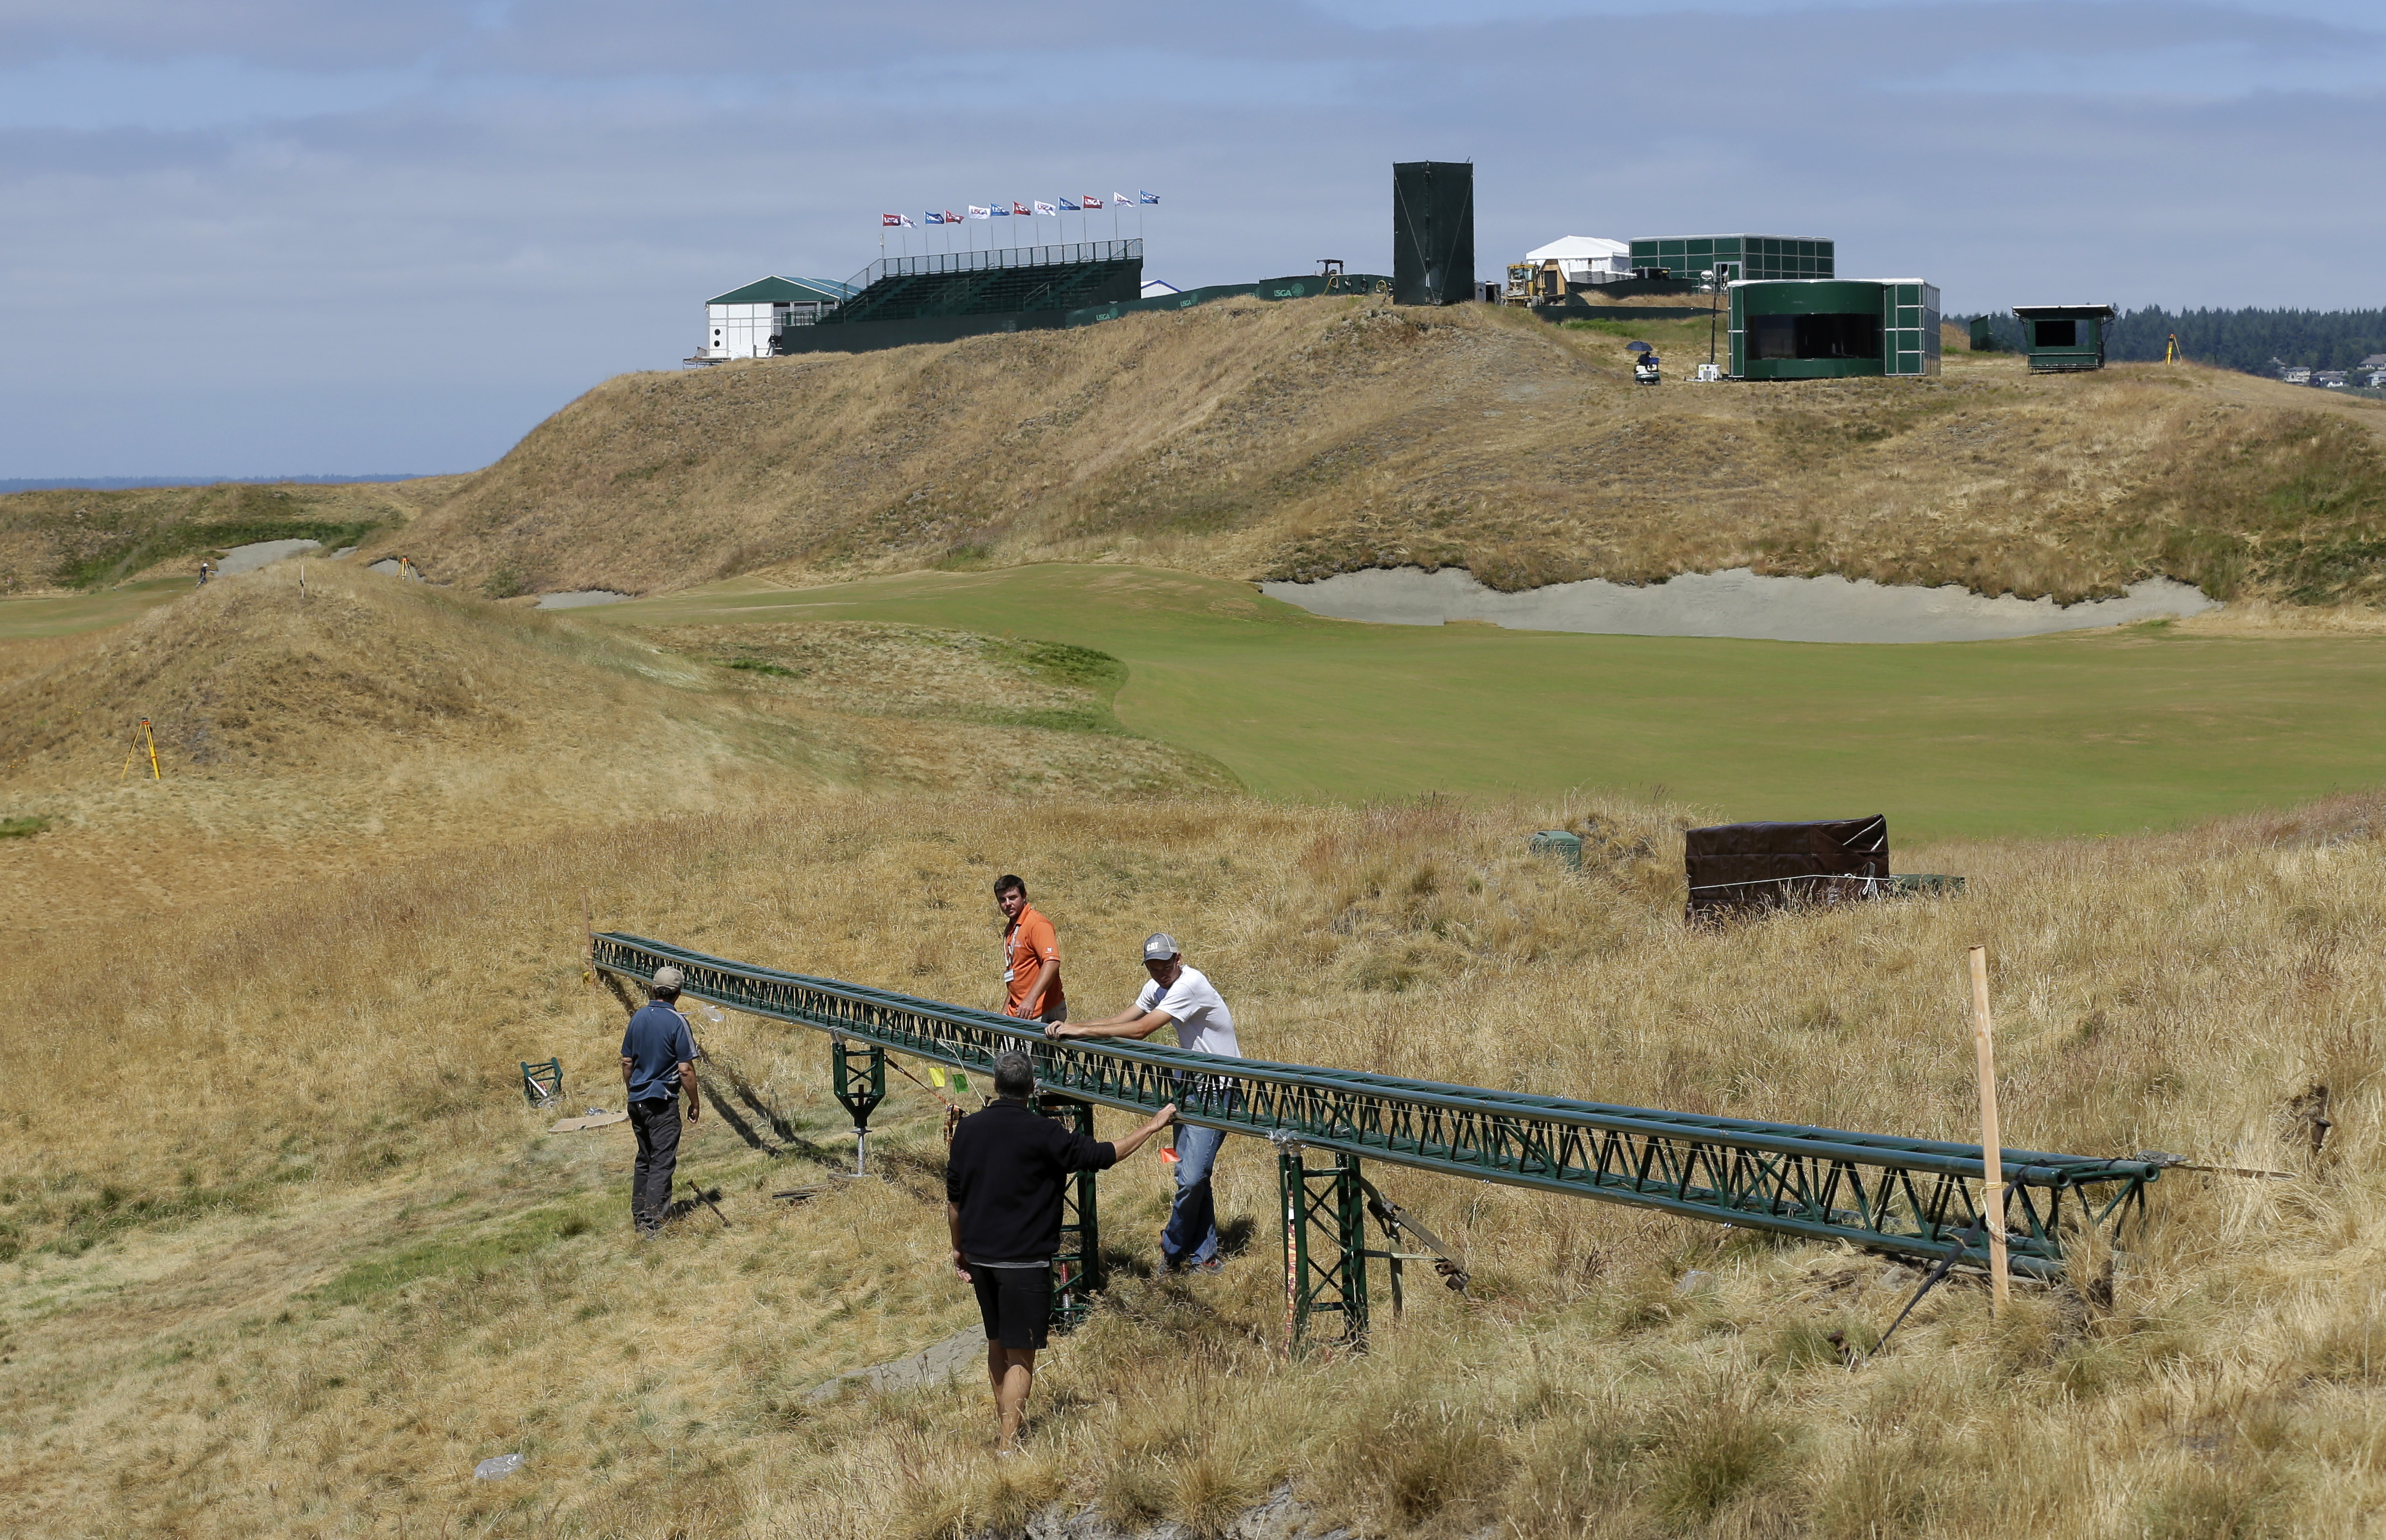 Technicians adjust a long video camera slider rail Thursday, June 11, 2015, on the 18th hole at Chambers Bay golf course in University Place, Wash. In its bid to take over the U.S. Open from NBC, Fox promised innovative coverage and will feature new graph